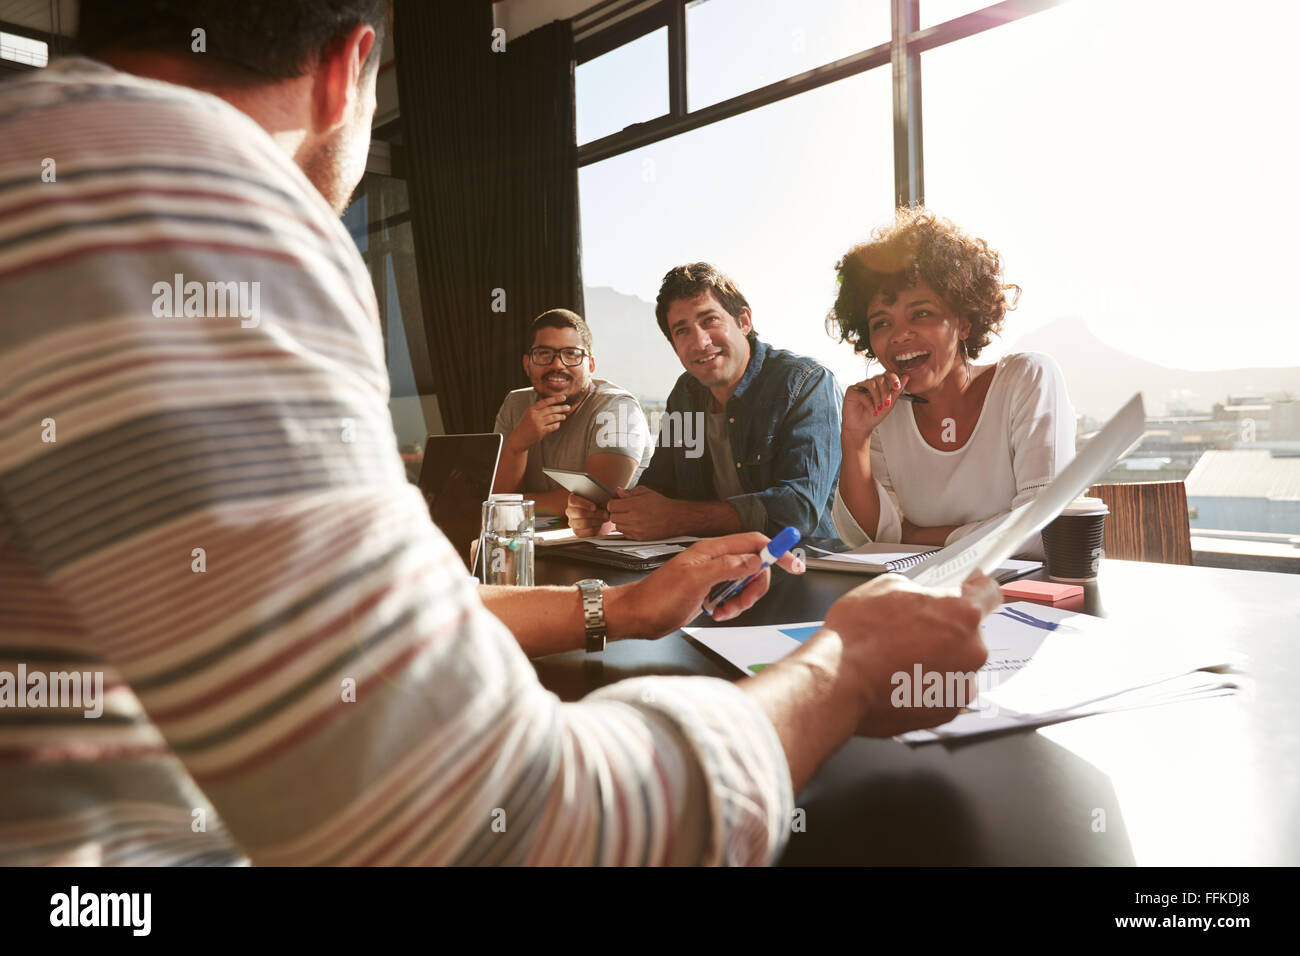 Shot of mixed race young people sitting at a table discussing new and creative business ideas. Smiling african woman - Stock Image